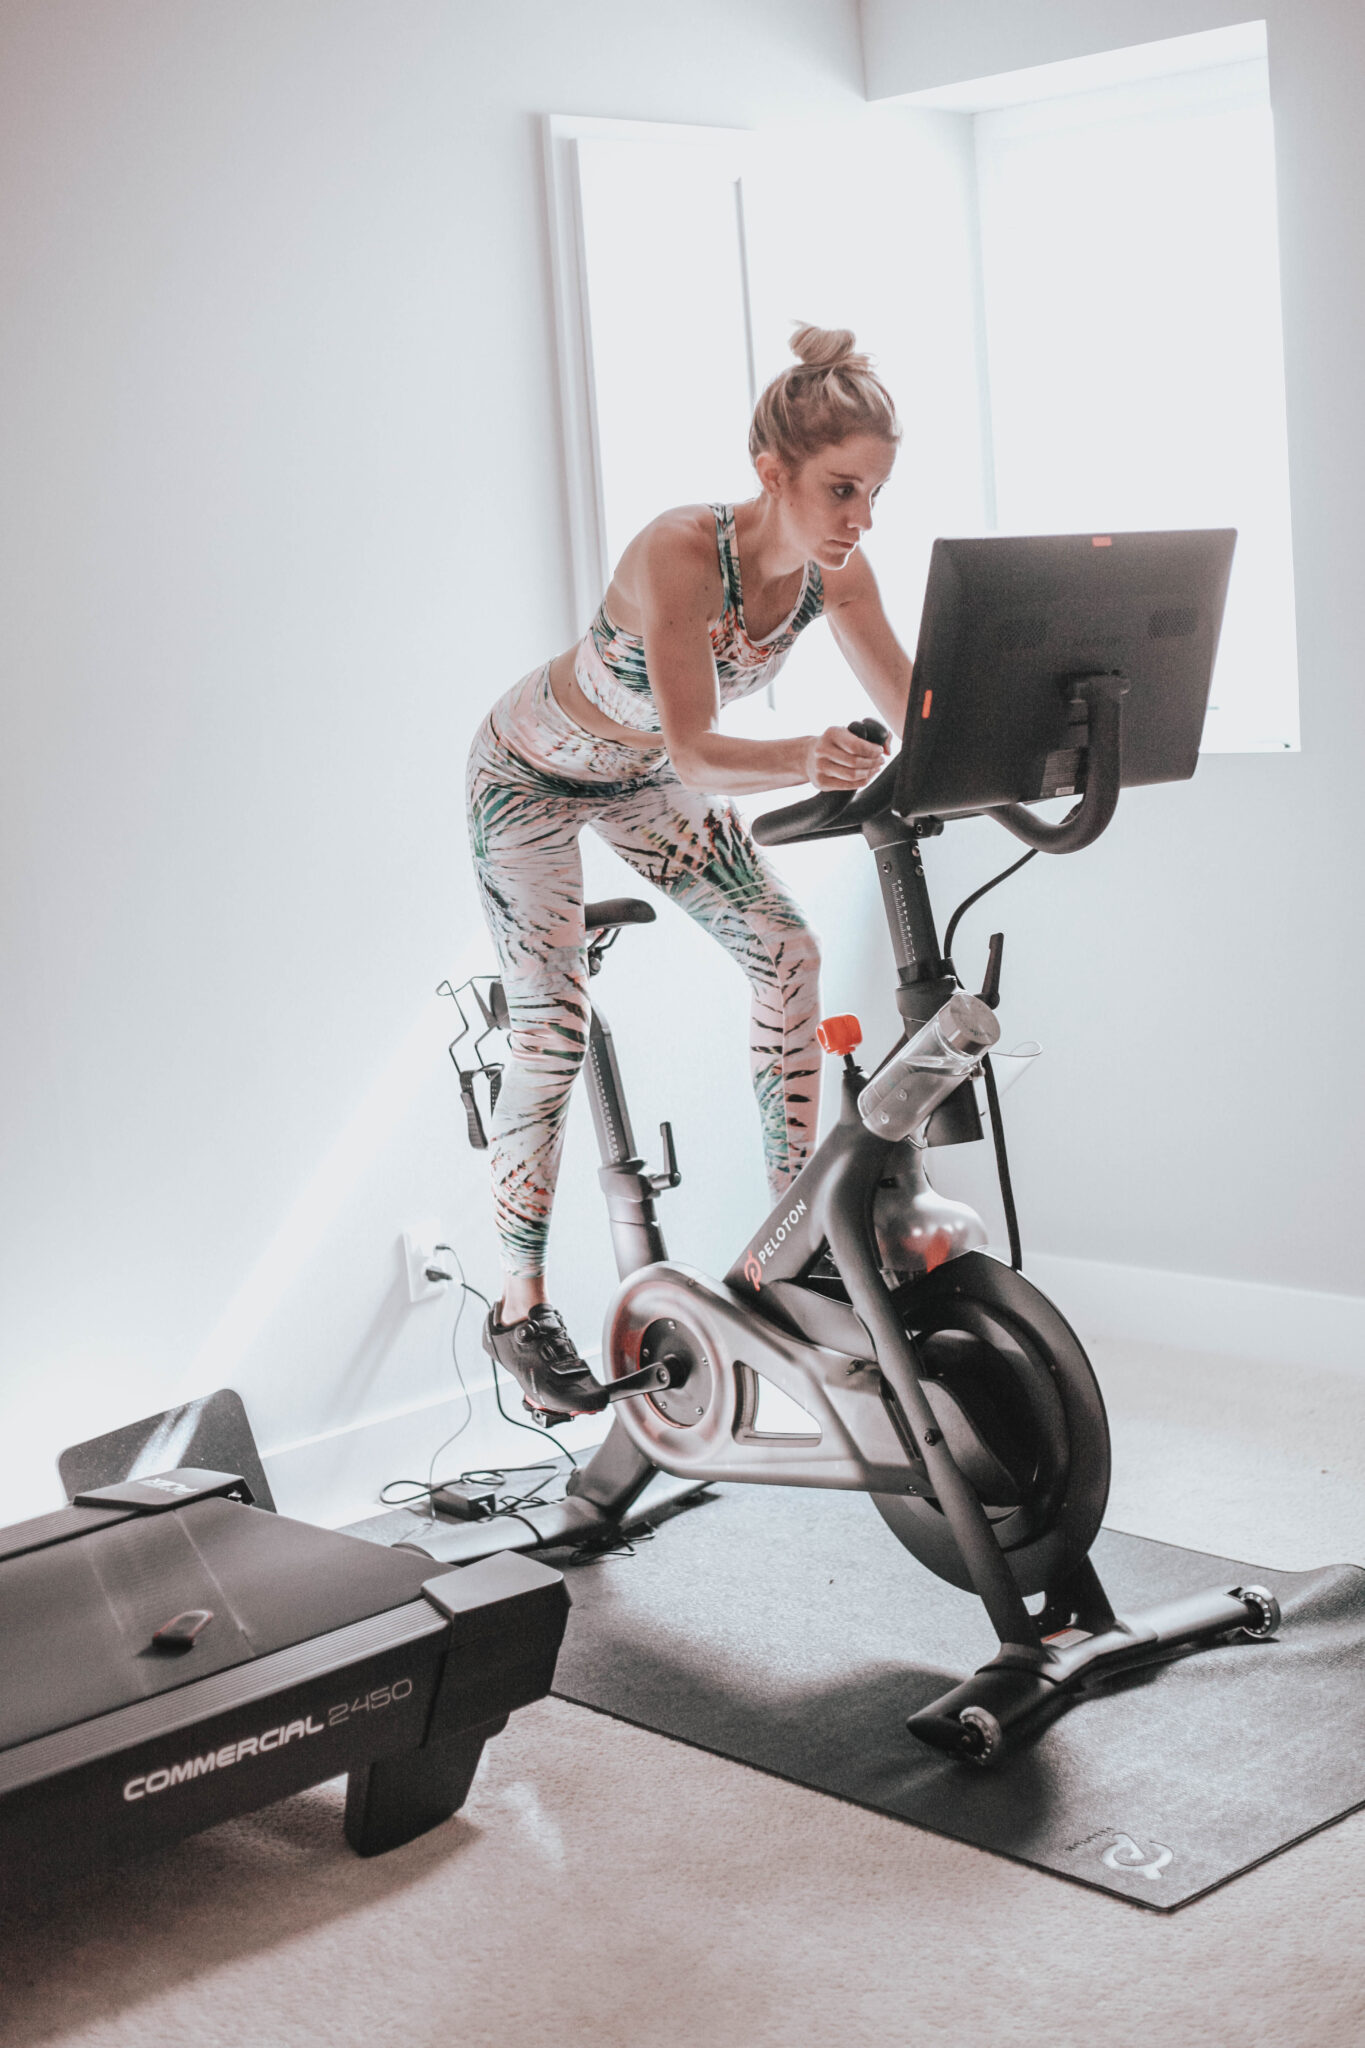 peloton bike wearing a fabletics outfit